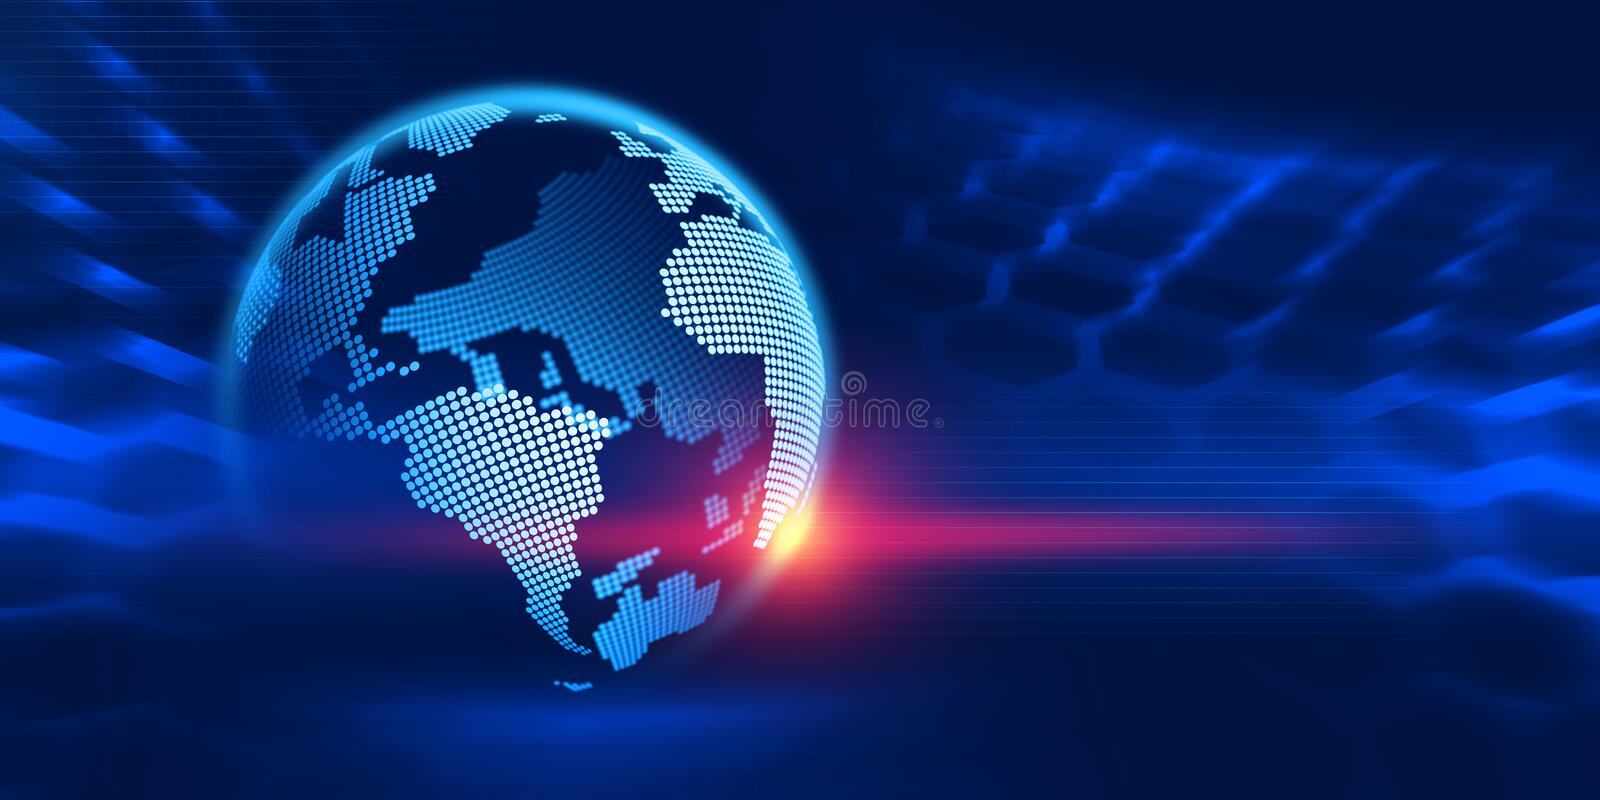 Digital planet. Information technology of the future. Research in the field of nanotechnology. 3d illustration on a dark blue background stock illustration